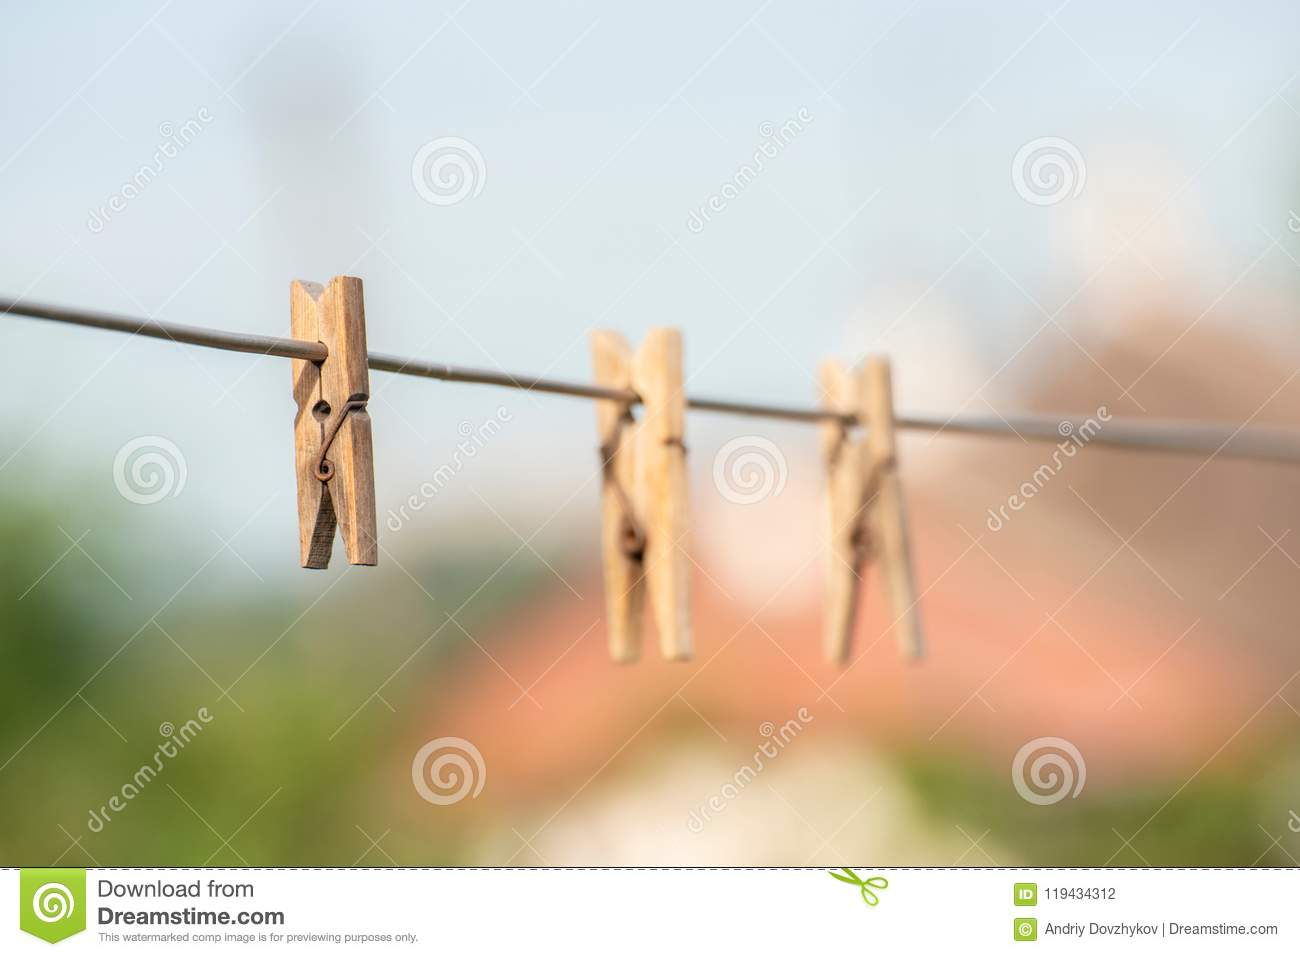 Wooden Clothespins Hanging On A Steel Wire On A Dark Background